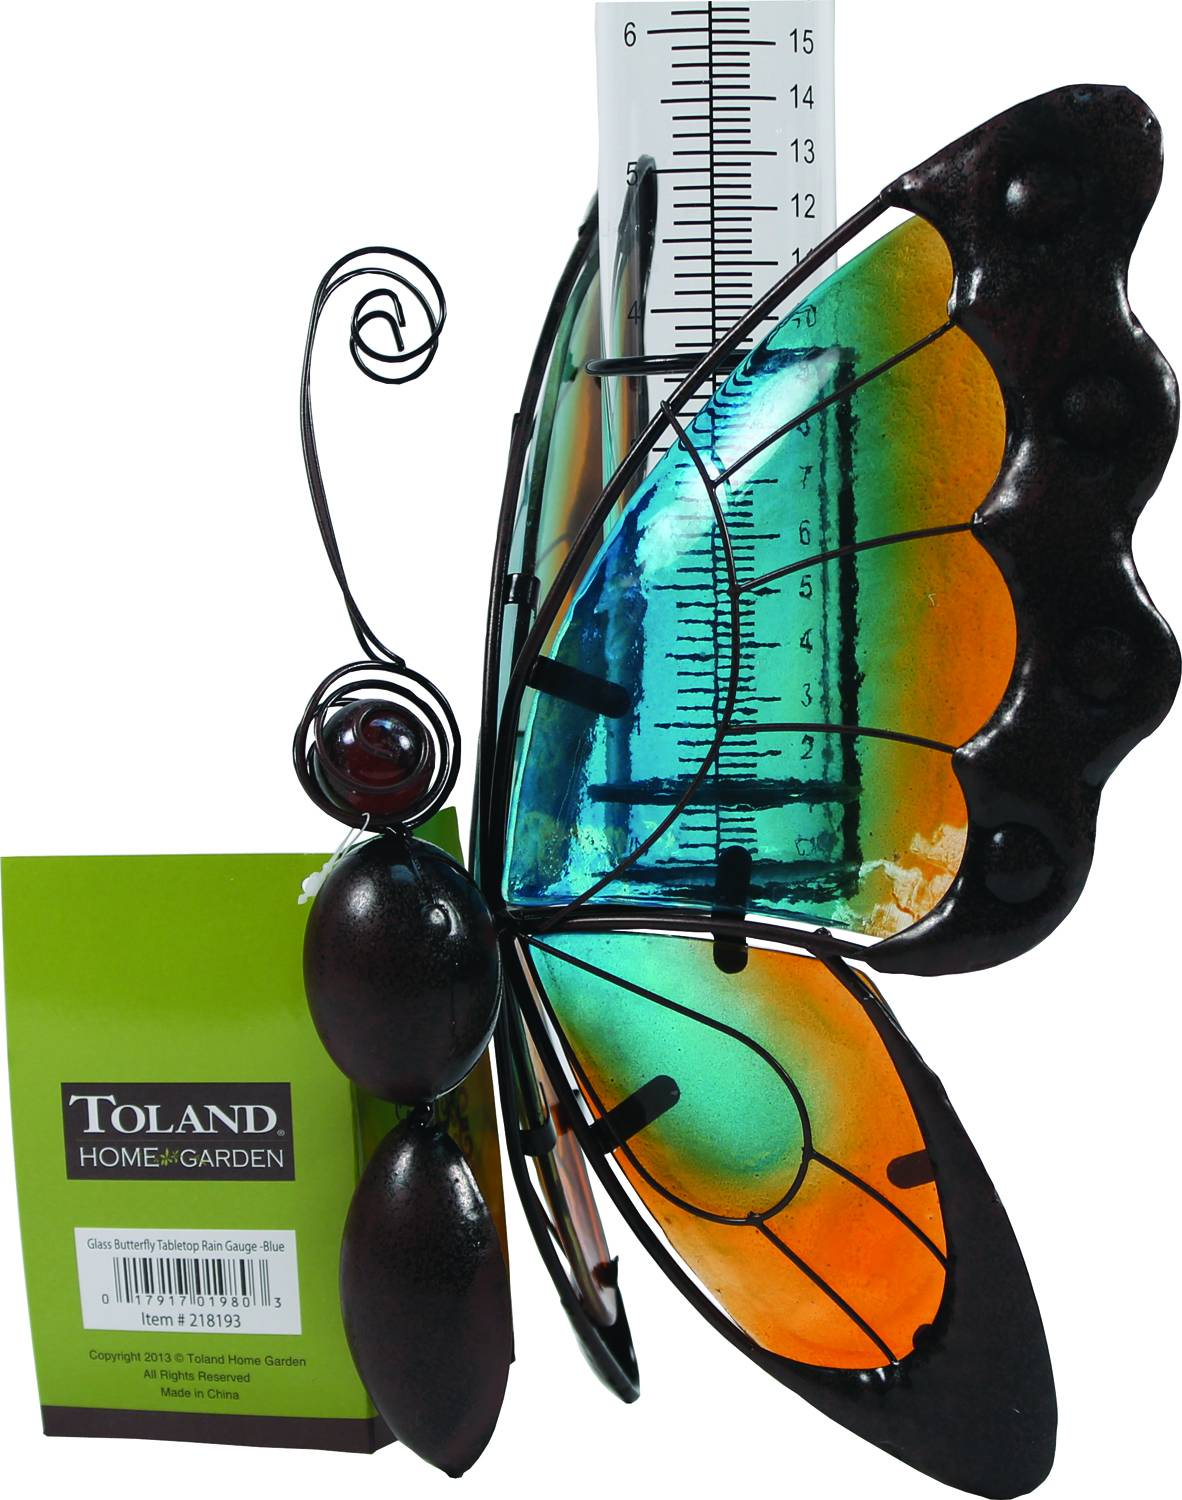 TOLAND HOME GARDEN Glass Butterfly Tabletop Rain Gauge